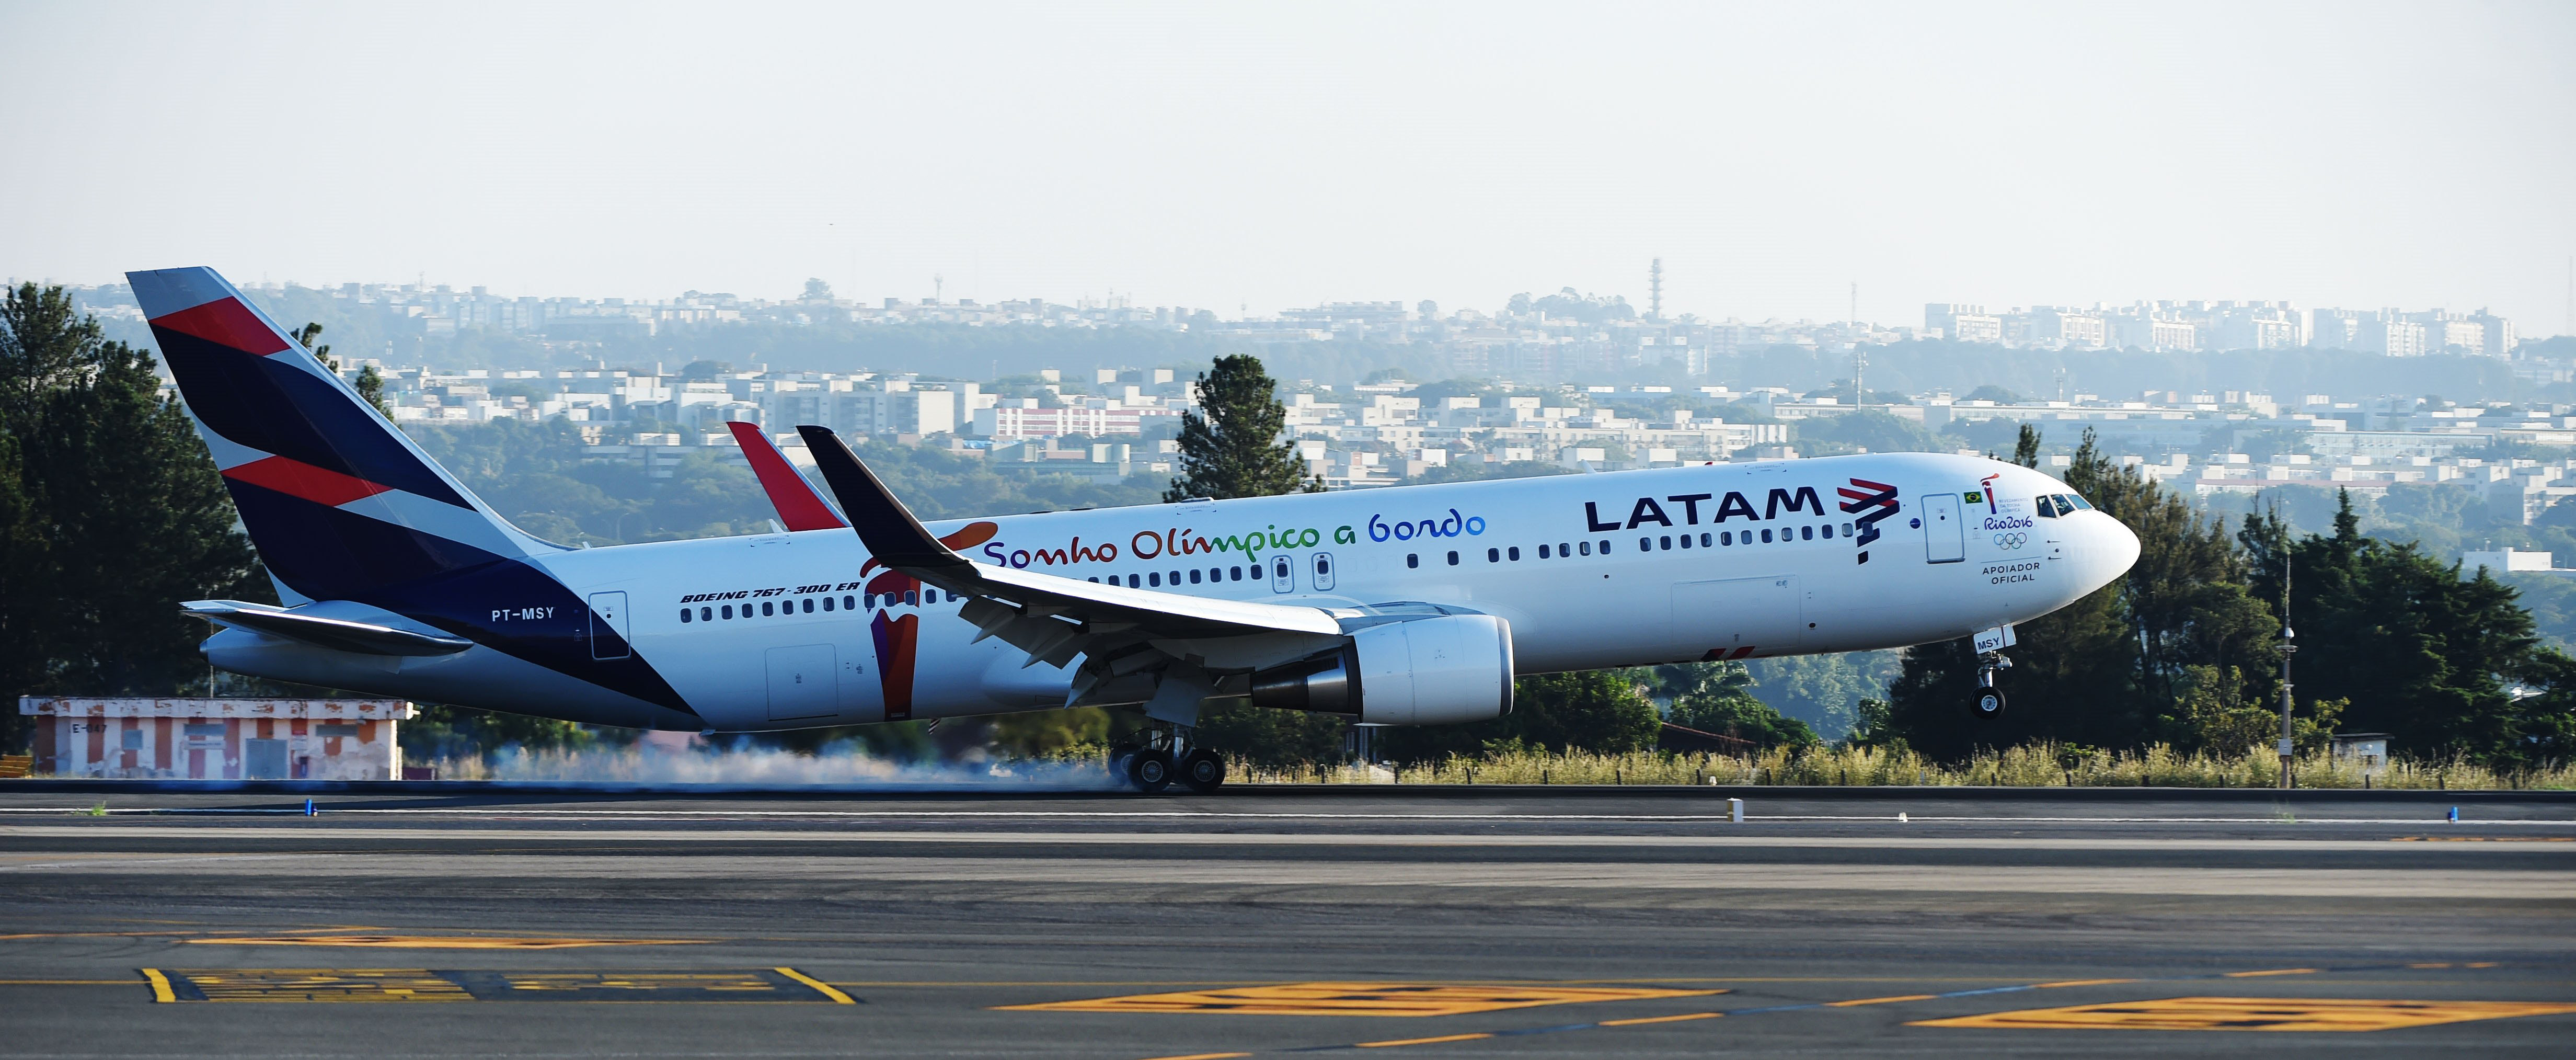 (FILES) This file photo taken on May 3, 2016 shows a LATAM Boeing 767-300ER aircraft transporting the Olympic flame as it arrives in Brasilia from Geneva. Latin America's biggest airline LATAM said on May 30, 2016, it will suspend its flights to crisis-hit Venezuela for an indefinite period, following a similar move by German carrier Lufthansa. / AFP PHOTO / EVARISTO SA